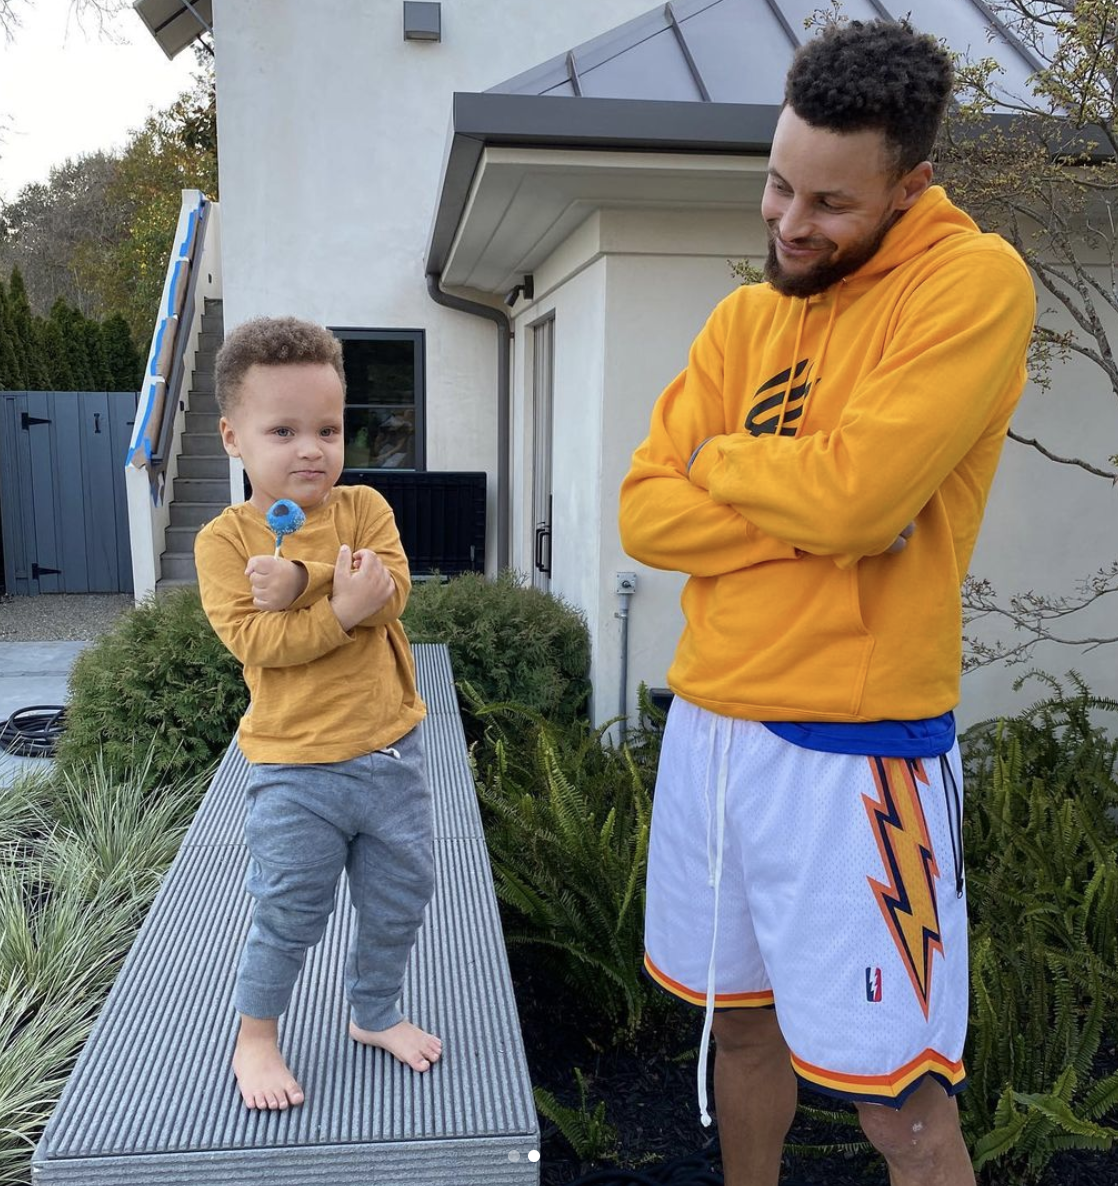 """Steph Curry - Steph Curry left fansswooning over this adorable photo with his 2-year-old son, Canon. The proud dad posed with his little guy after Canon received his first haircut. Mama Ayesha took the photo of the duo with her caption reading, """"Baby boy got his first haircut and I can't deal 😭. My handsomes!!!!"""" How precious! (Photo: Ayesha Curry) Photo: Ayesha Curry"""